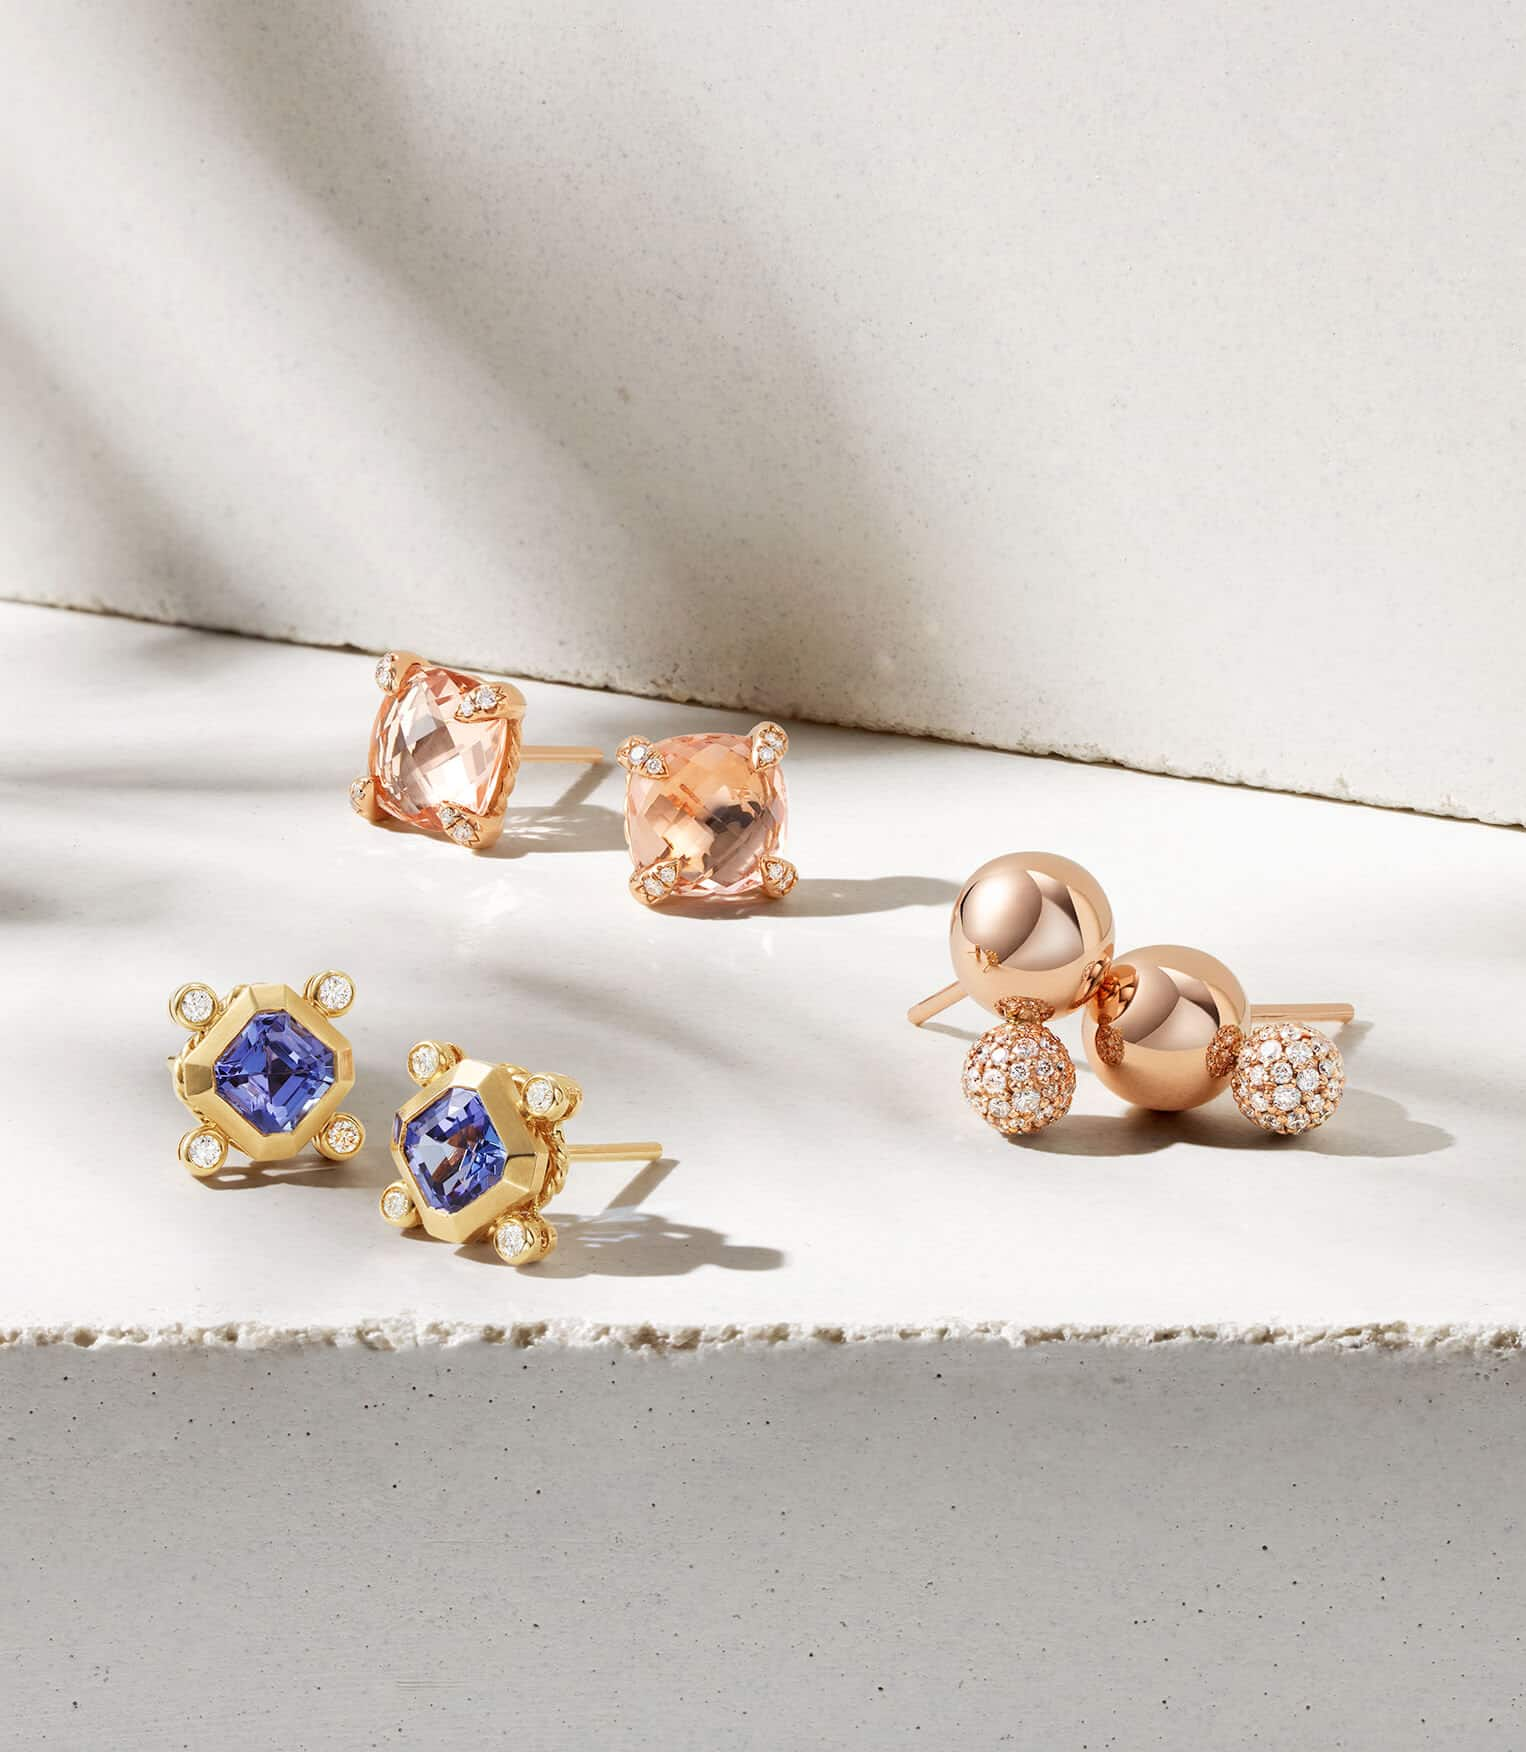 A color photo of three pairs of David Yurman stud earrings in 18K yellow gold or rose gold with pavé diamonds, morganite or sapphires all scattered on top of a beige-colored stone background with shadows.